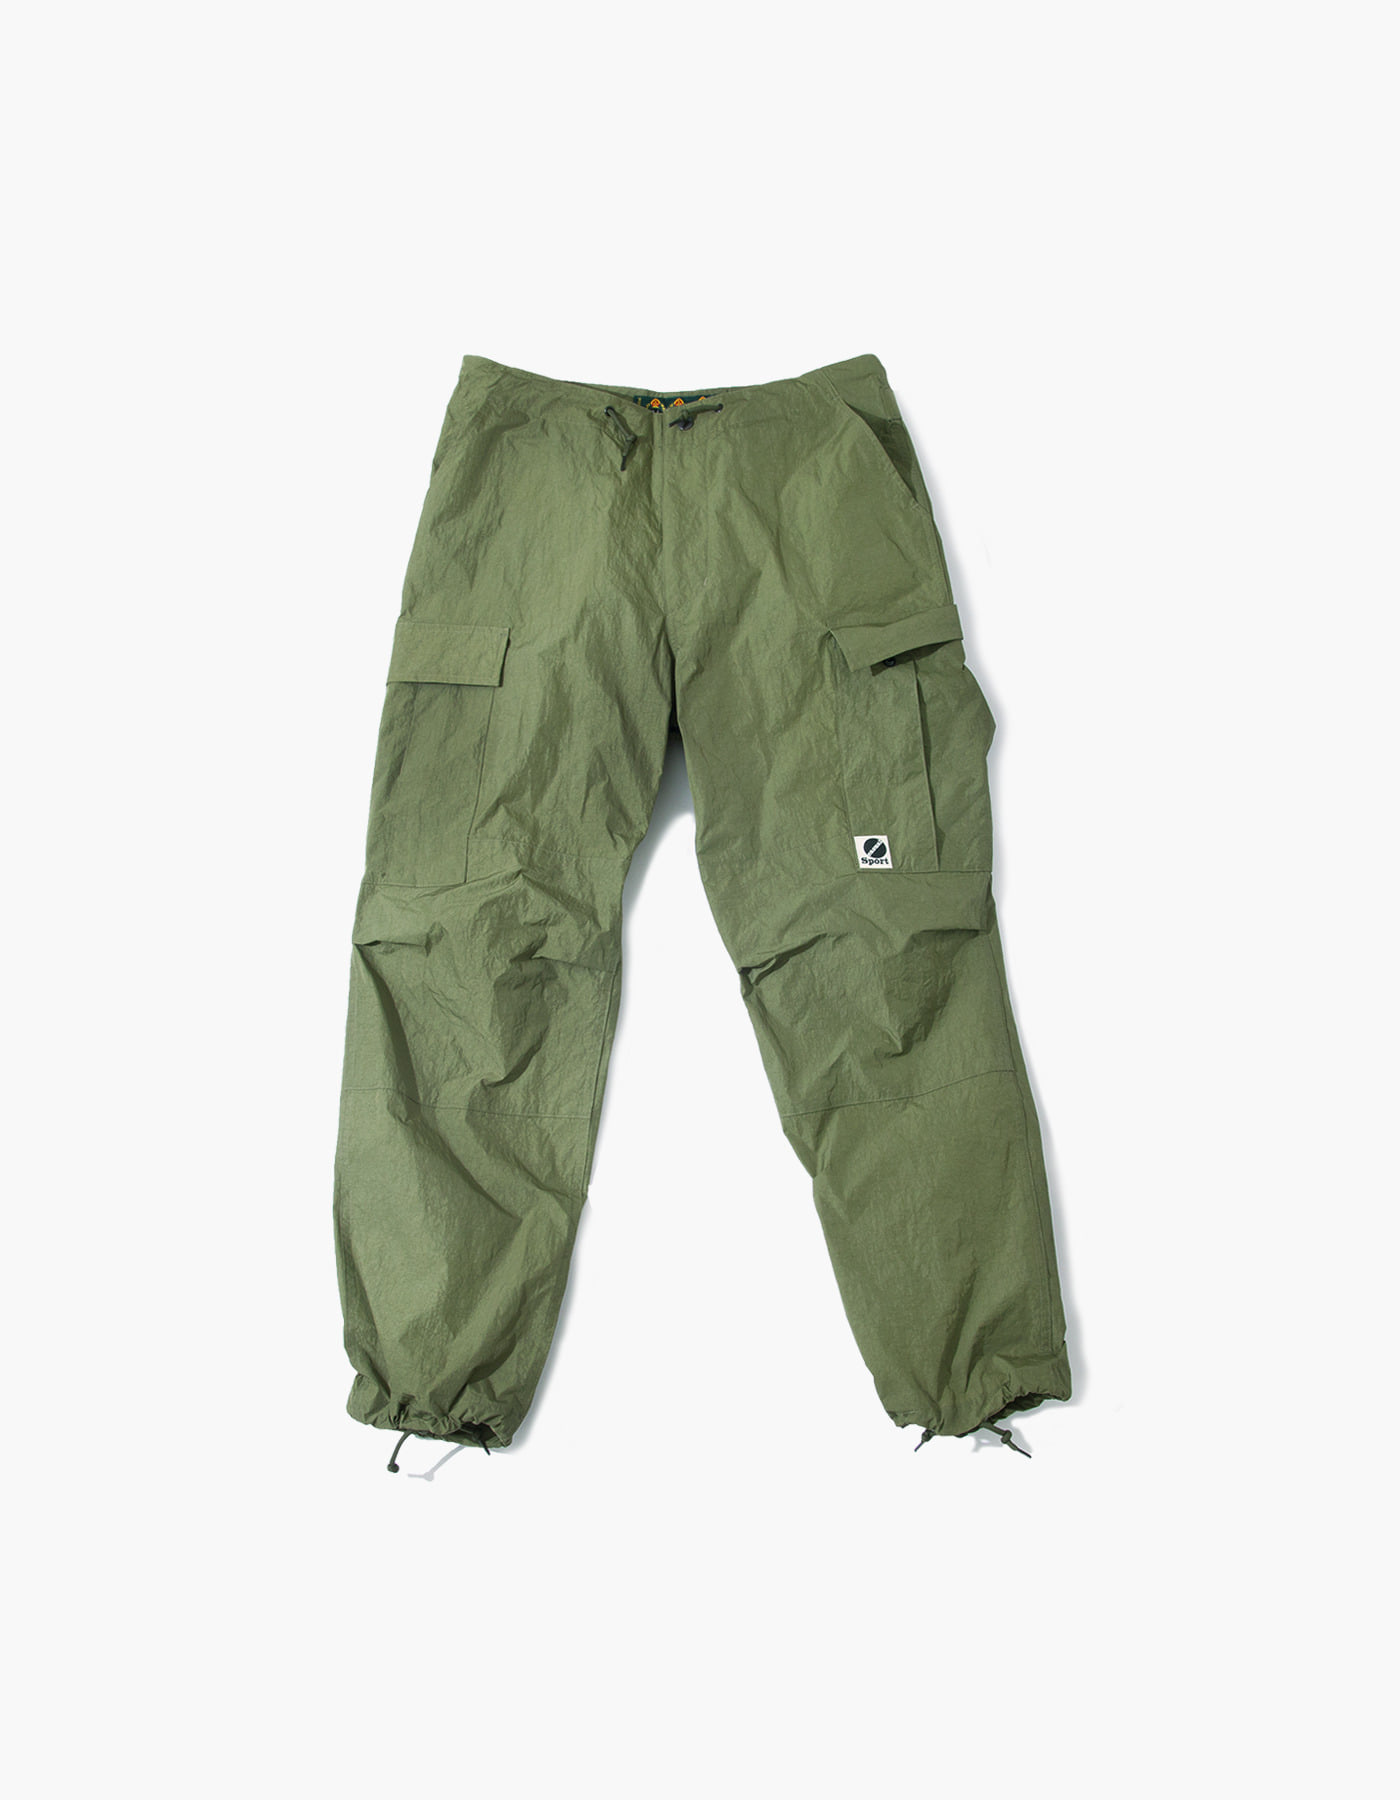 SALT NYLON CARGO PANTS / OLIVE